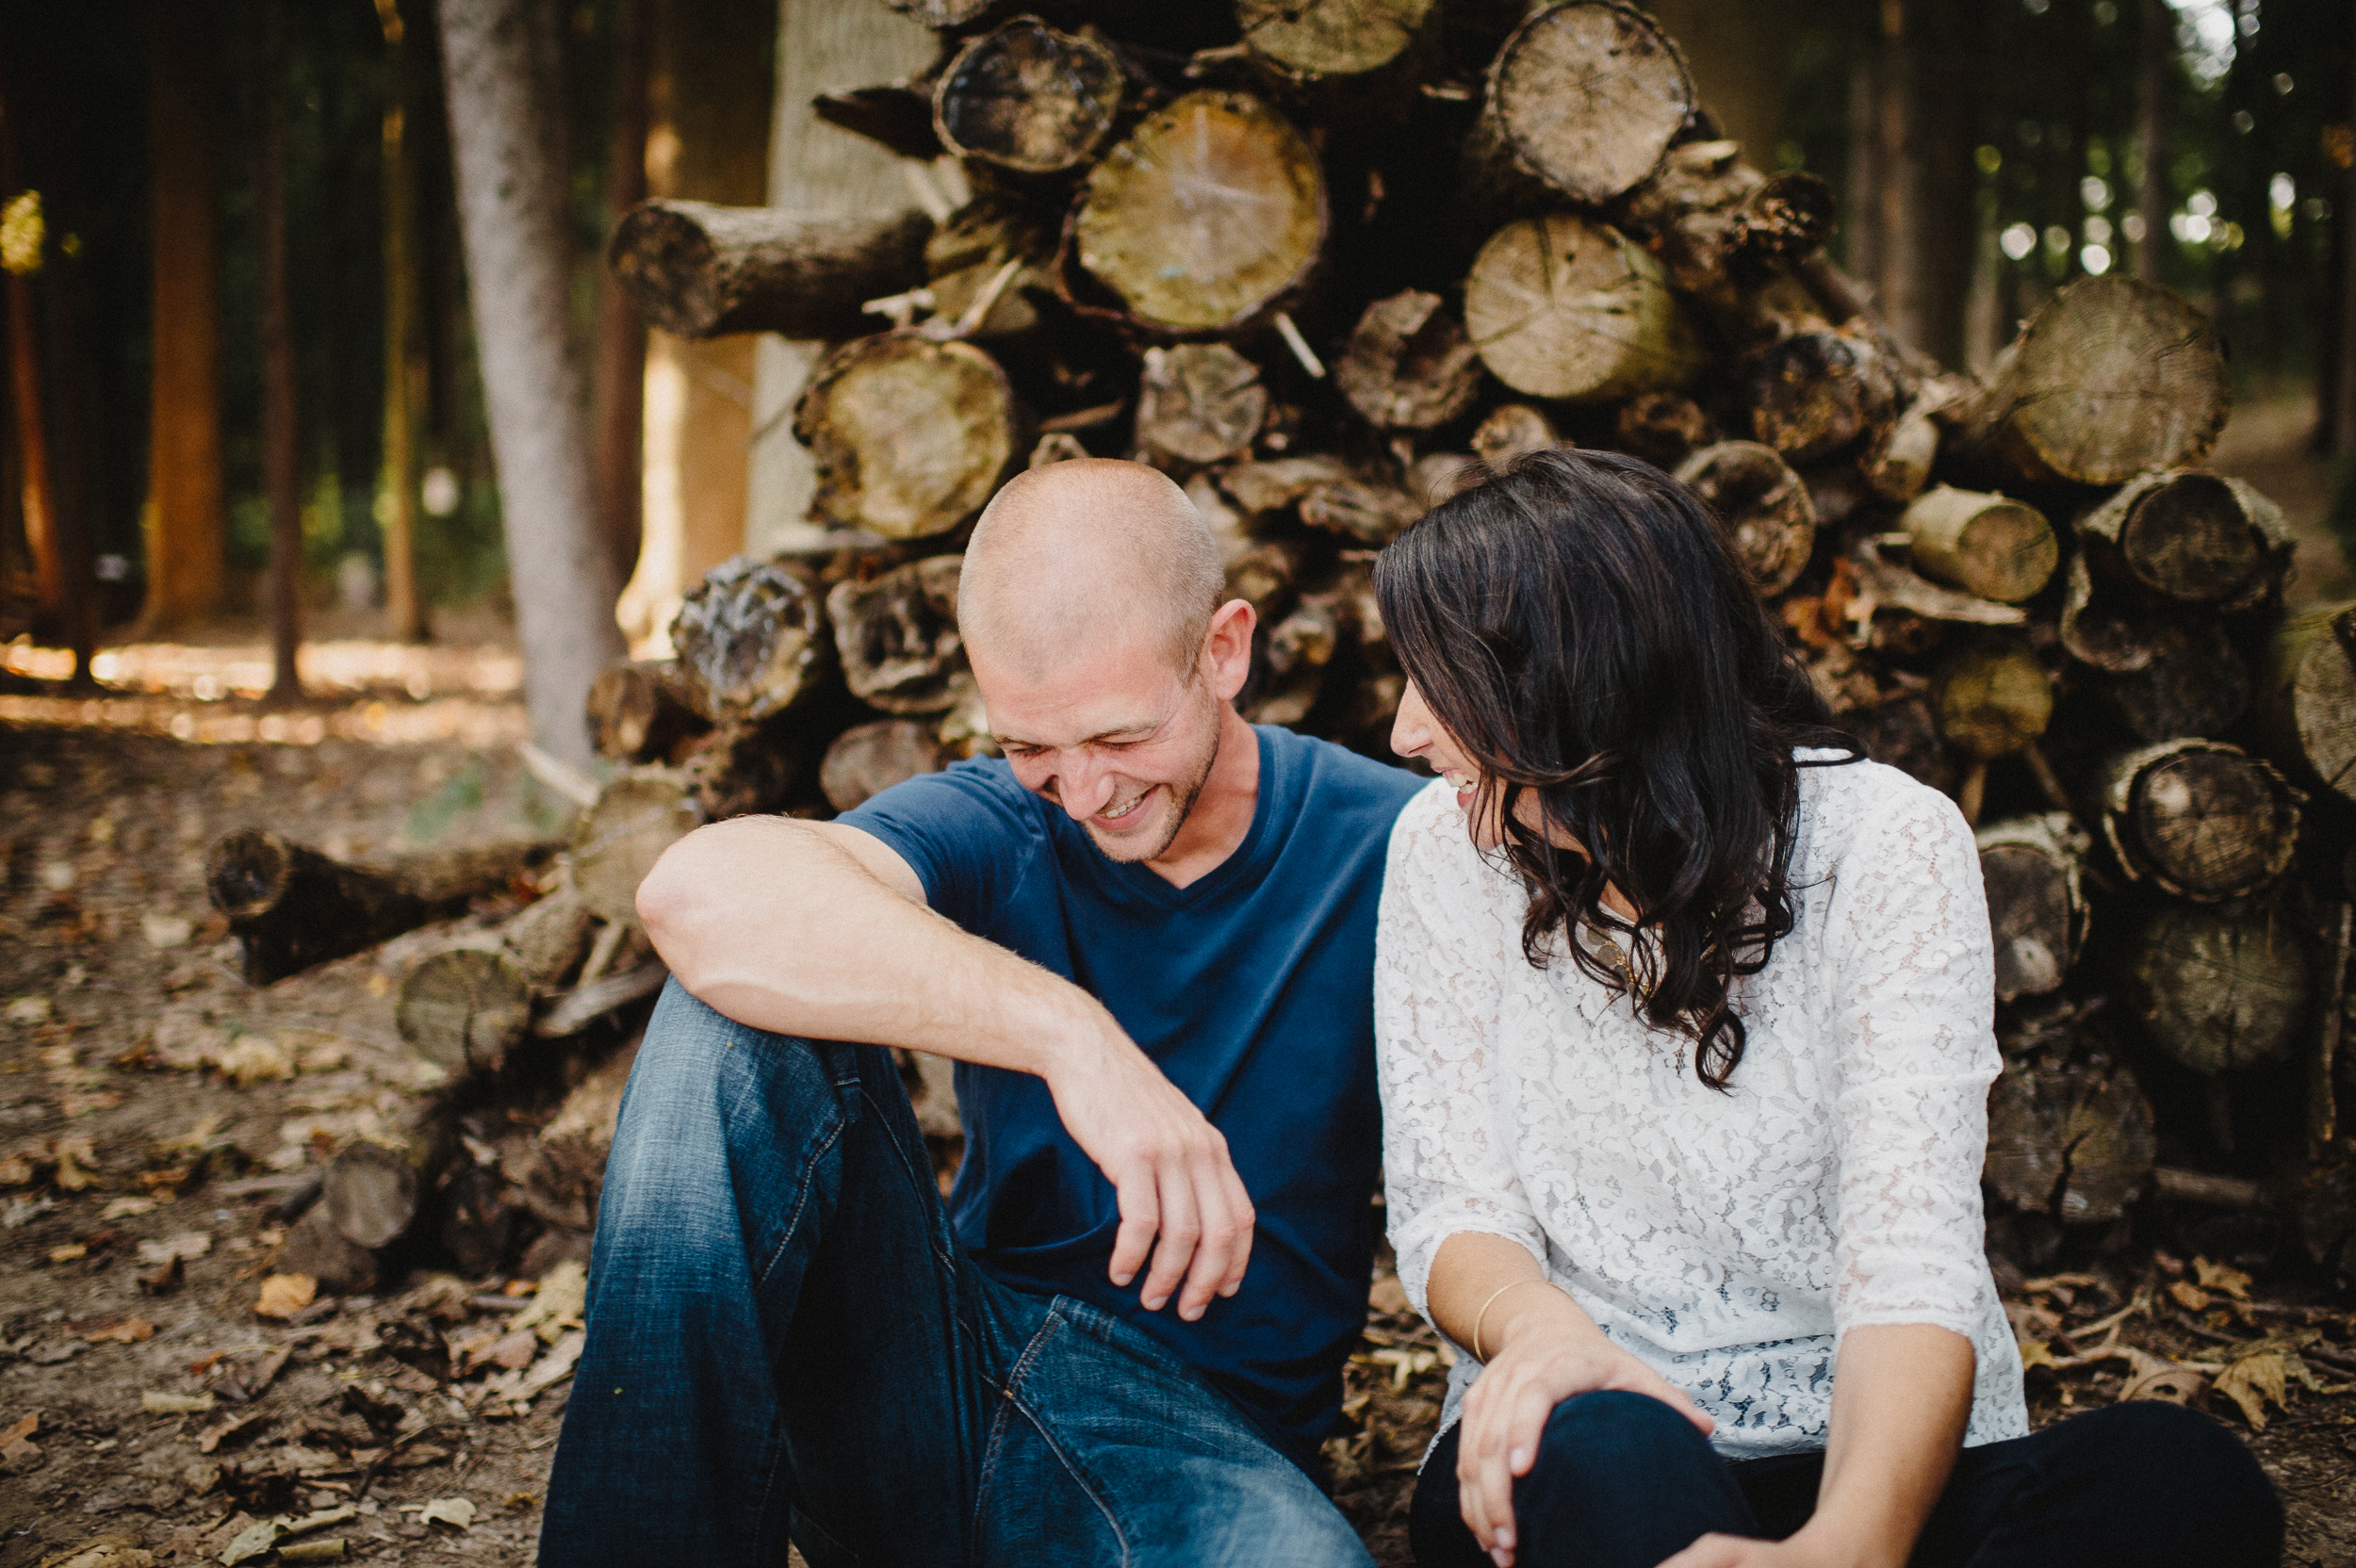 pat-robinson-photography-pa-engagement-session-7.jpg